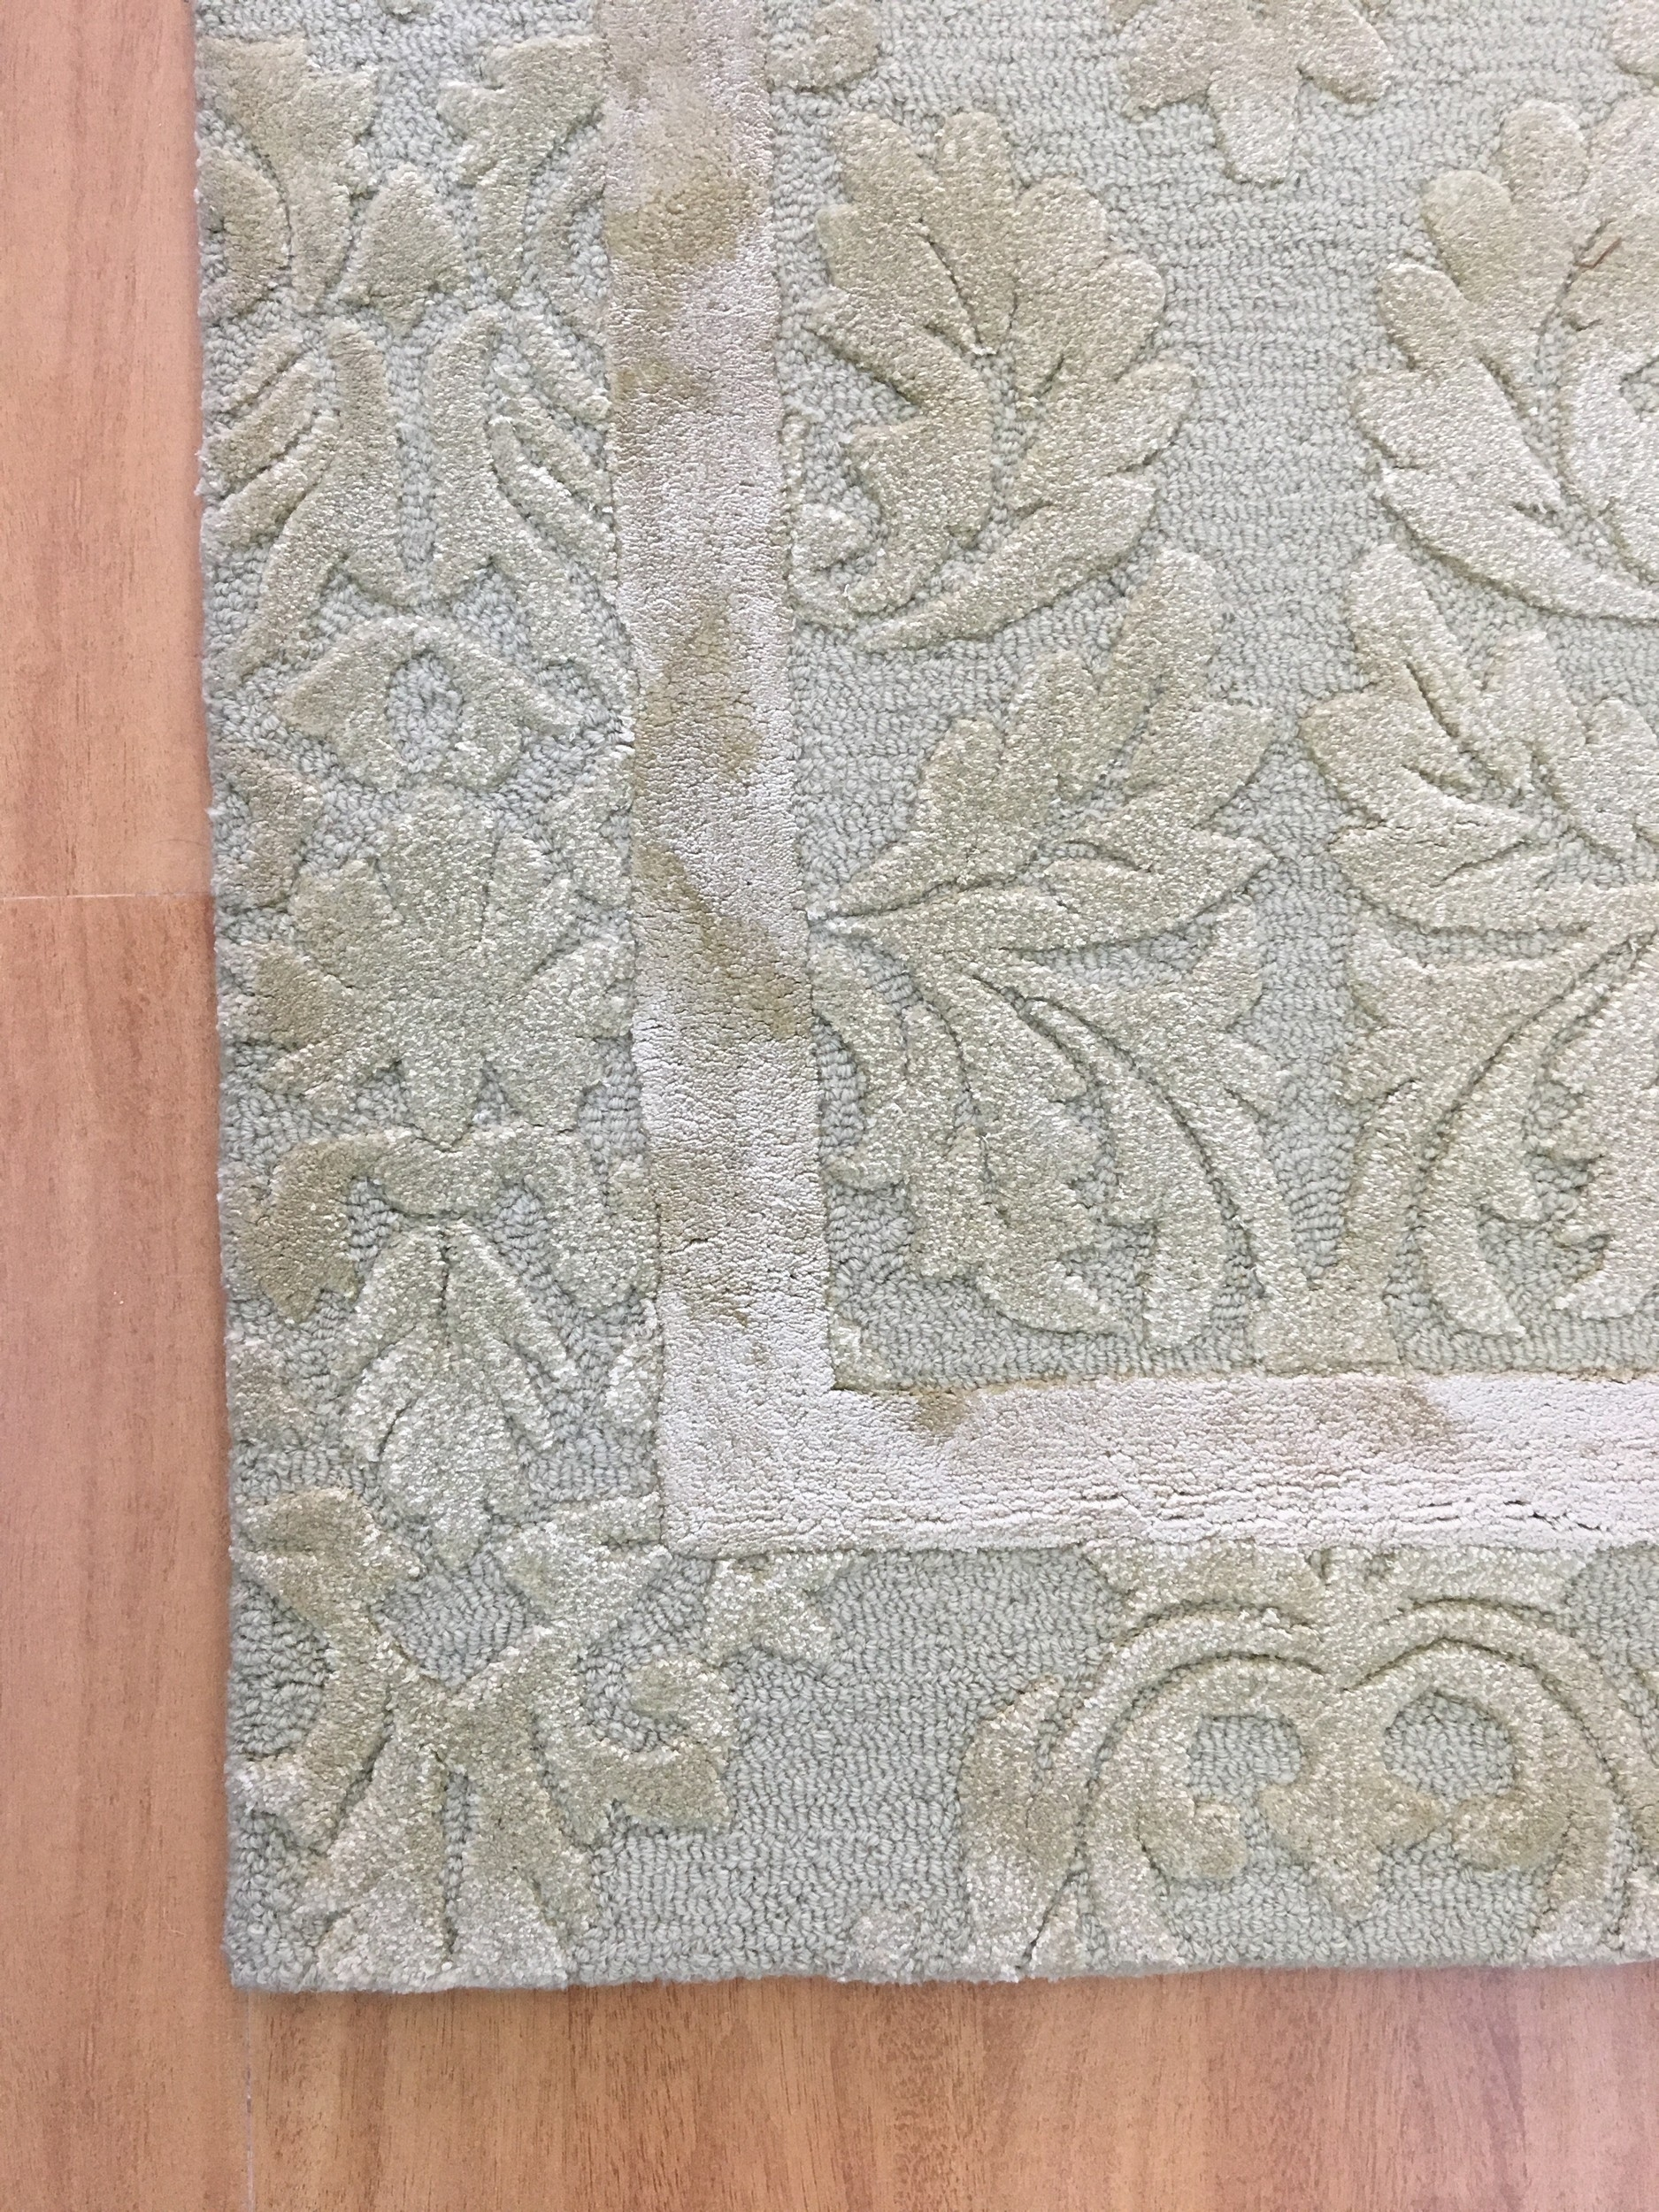 Handmade Wool Viscose Floral Green 5×8 Lt1007 Area Rug Within 5×8 Wool Area Rugs (#6 of 15)